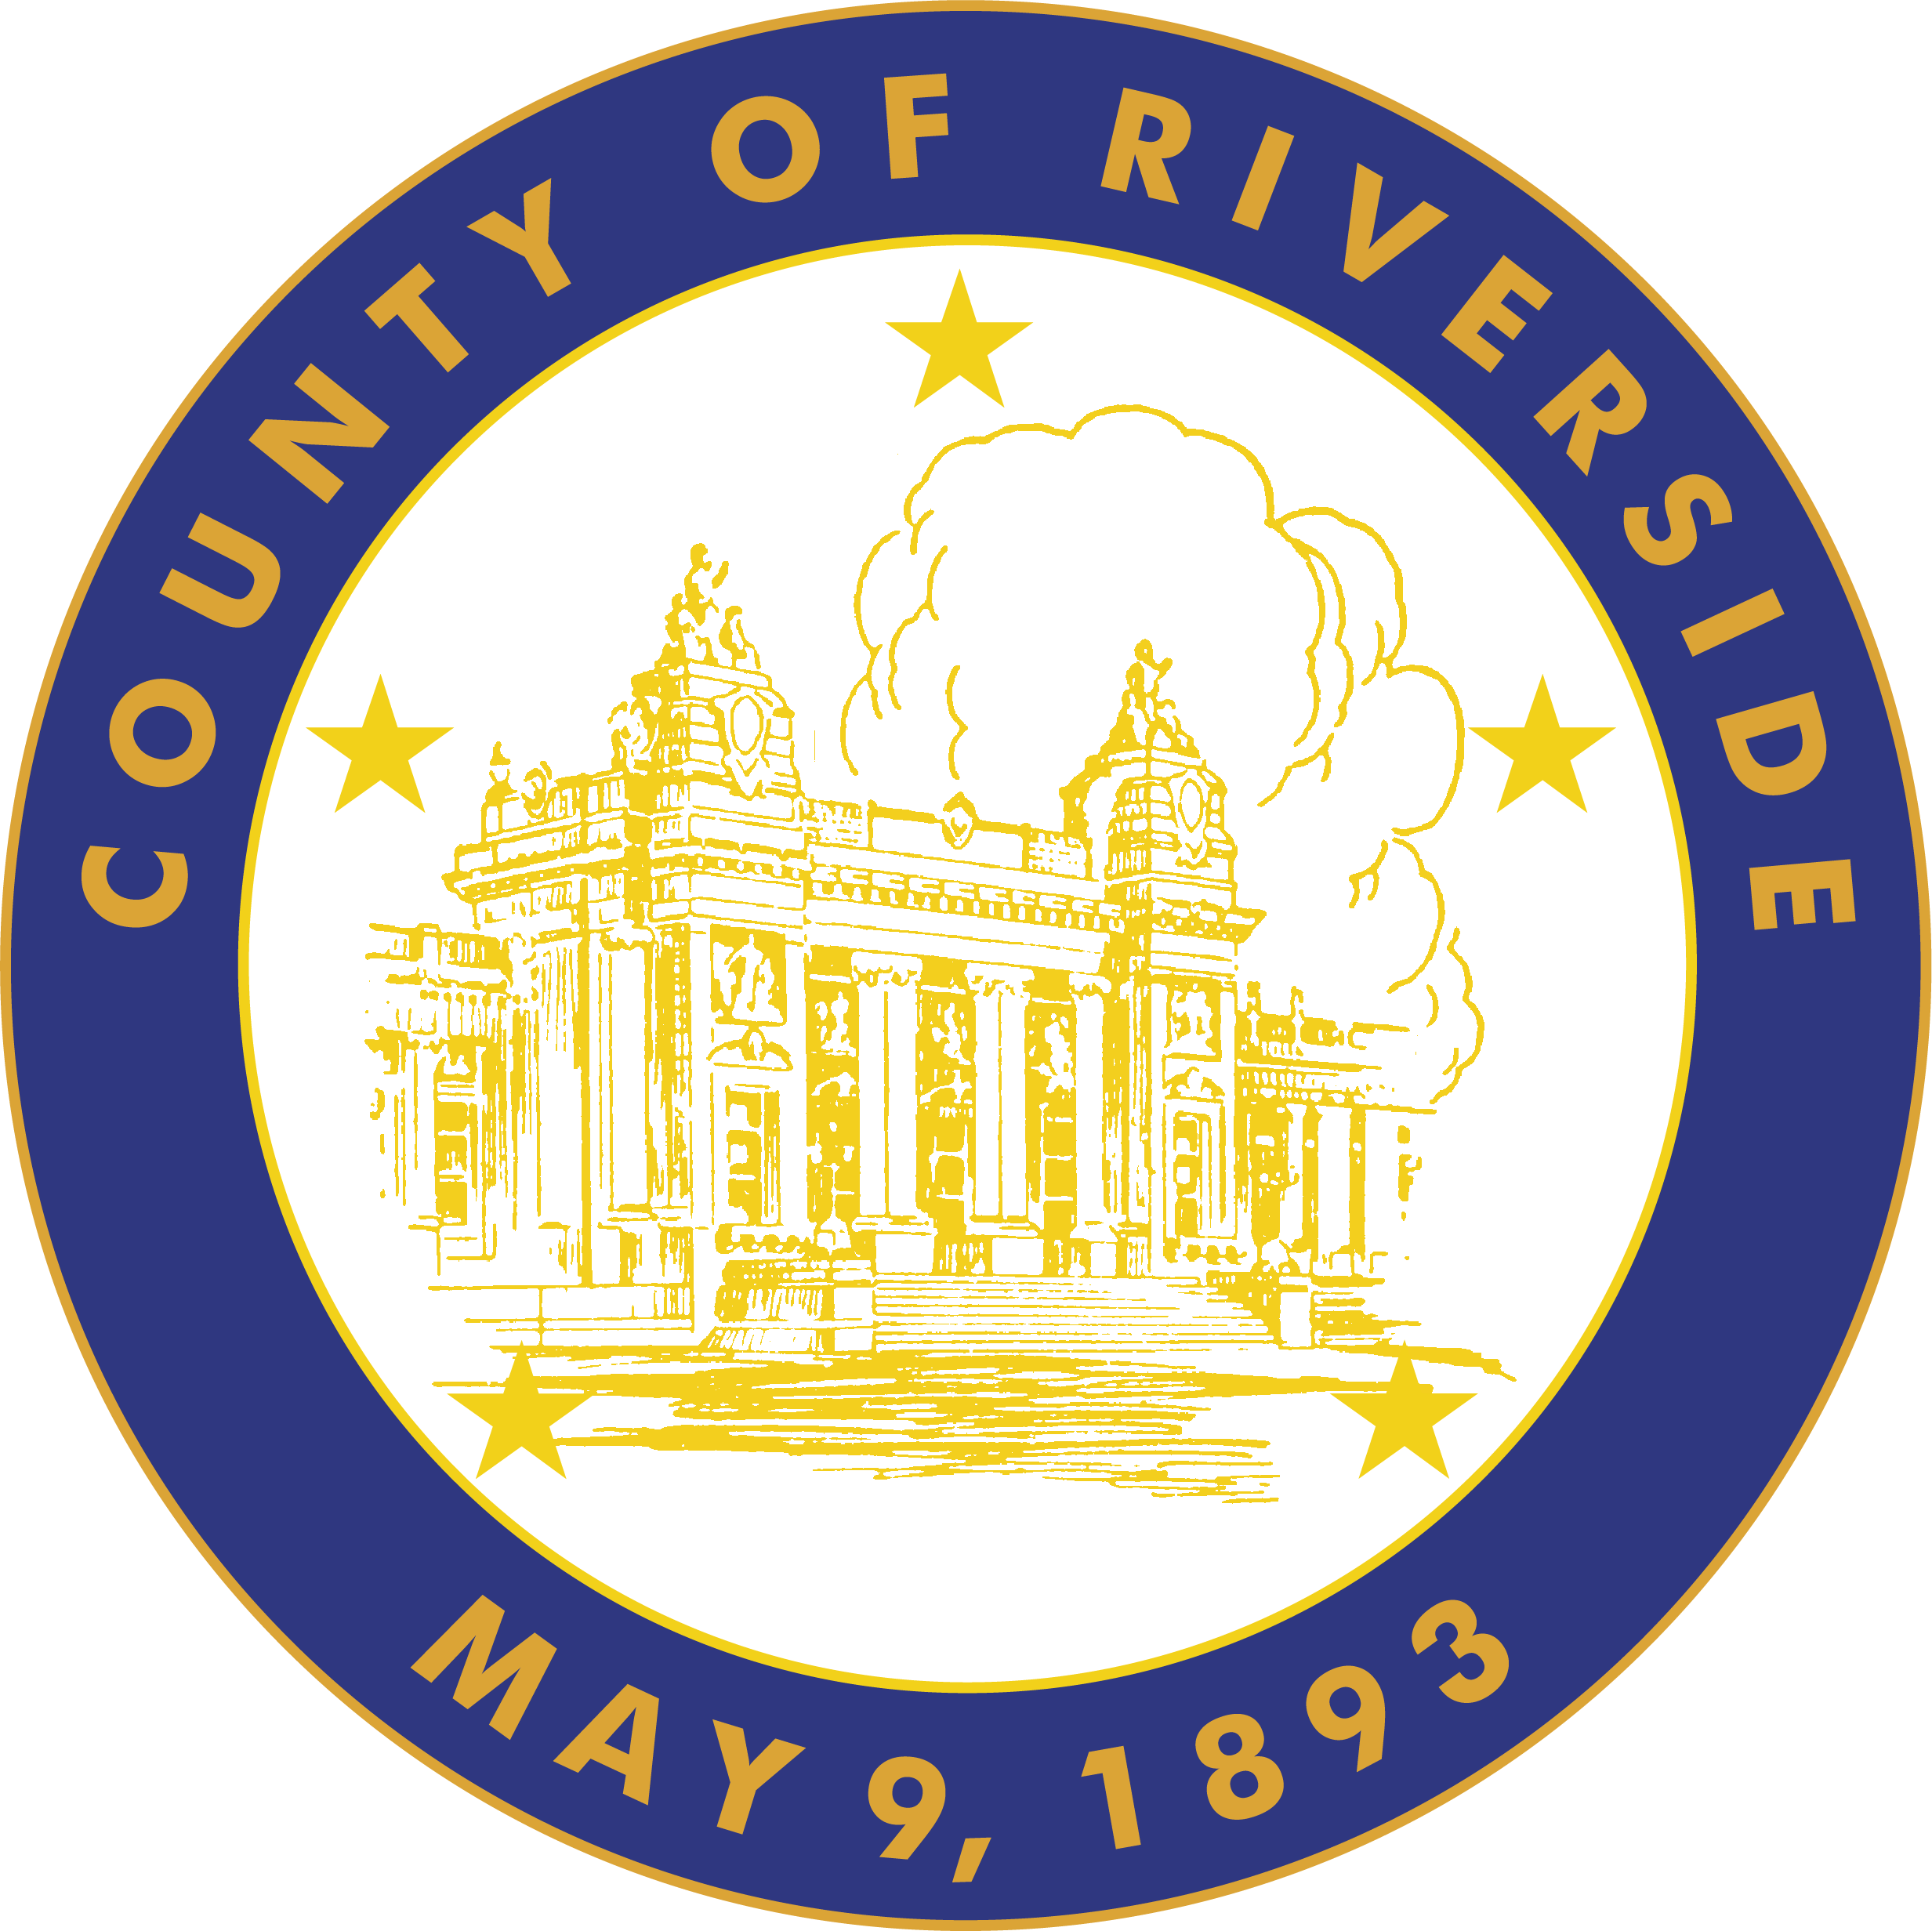 County of Riverside Human Resources Department > HR Services